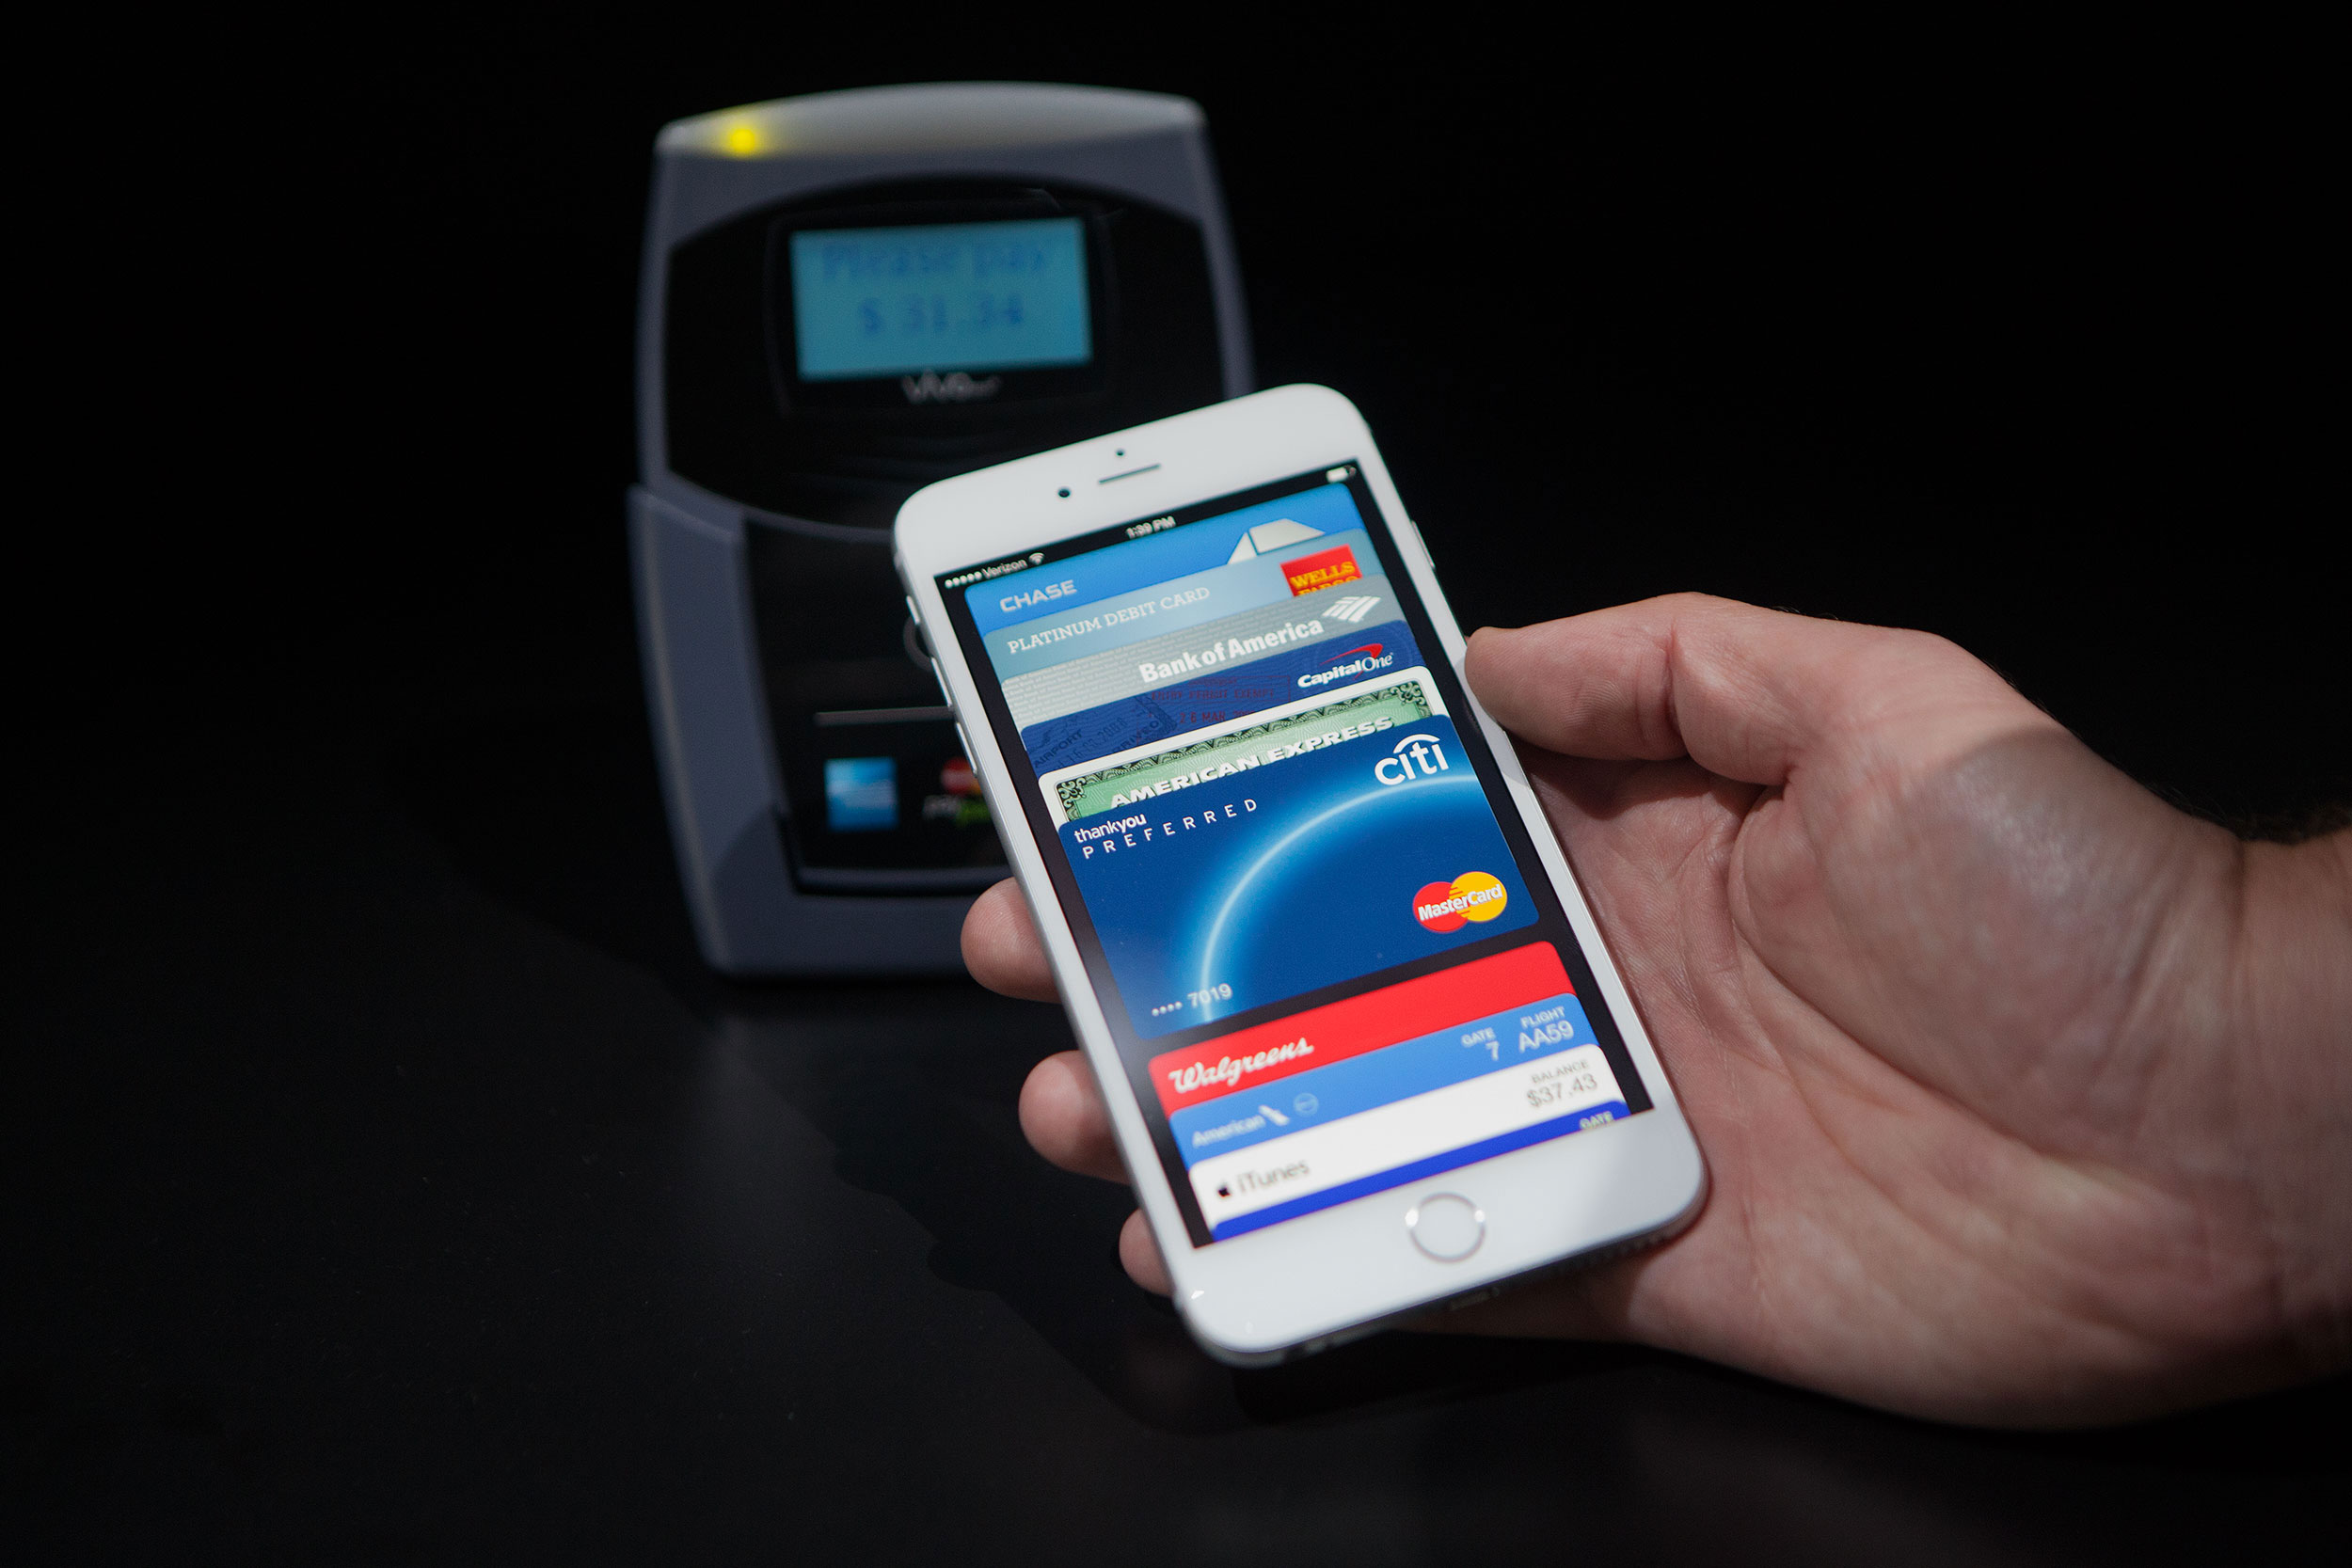 Soon you can use Apple Pay at Starbucks, KFC and Chili's